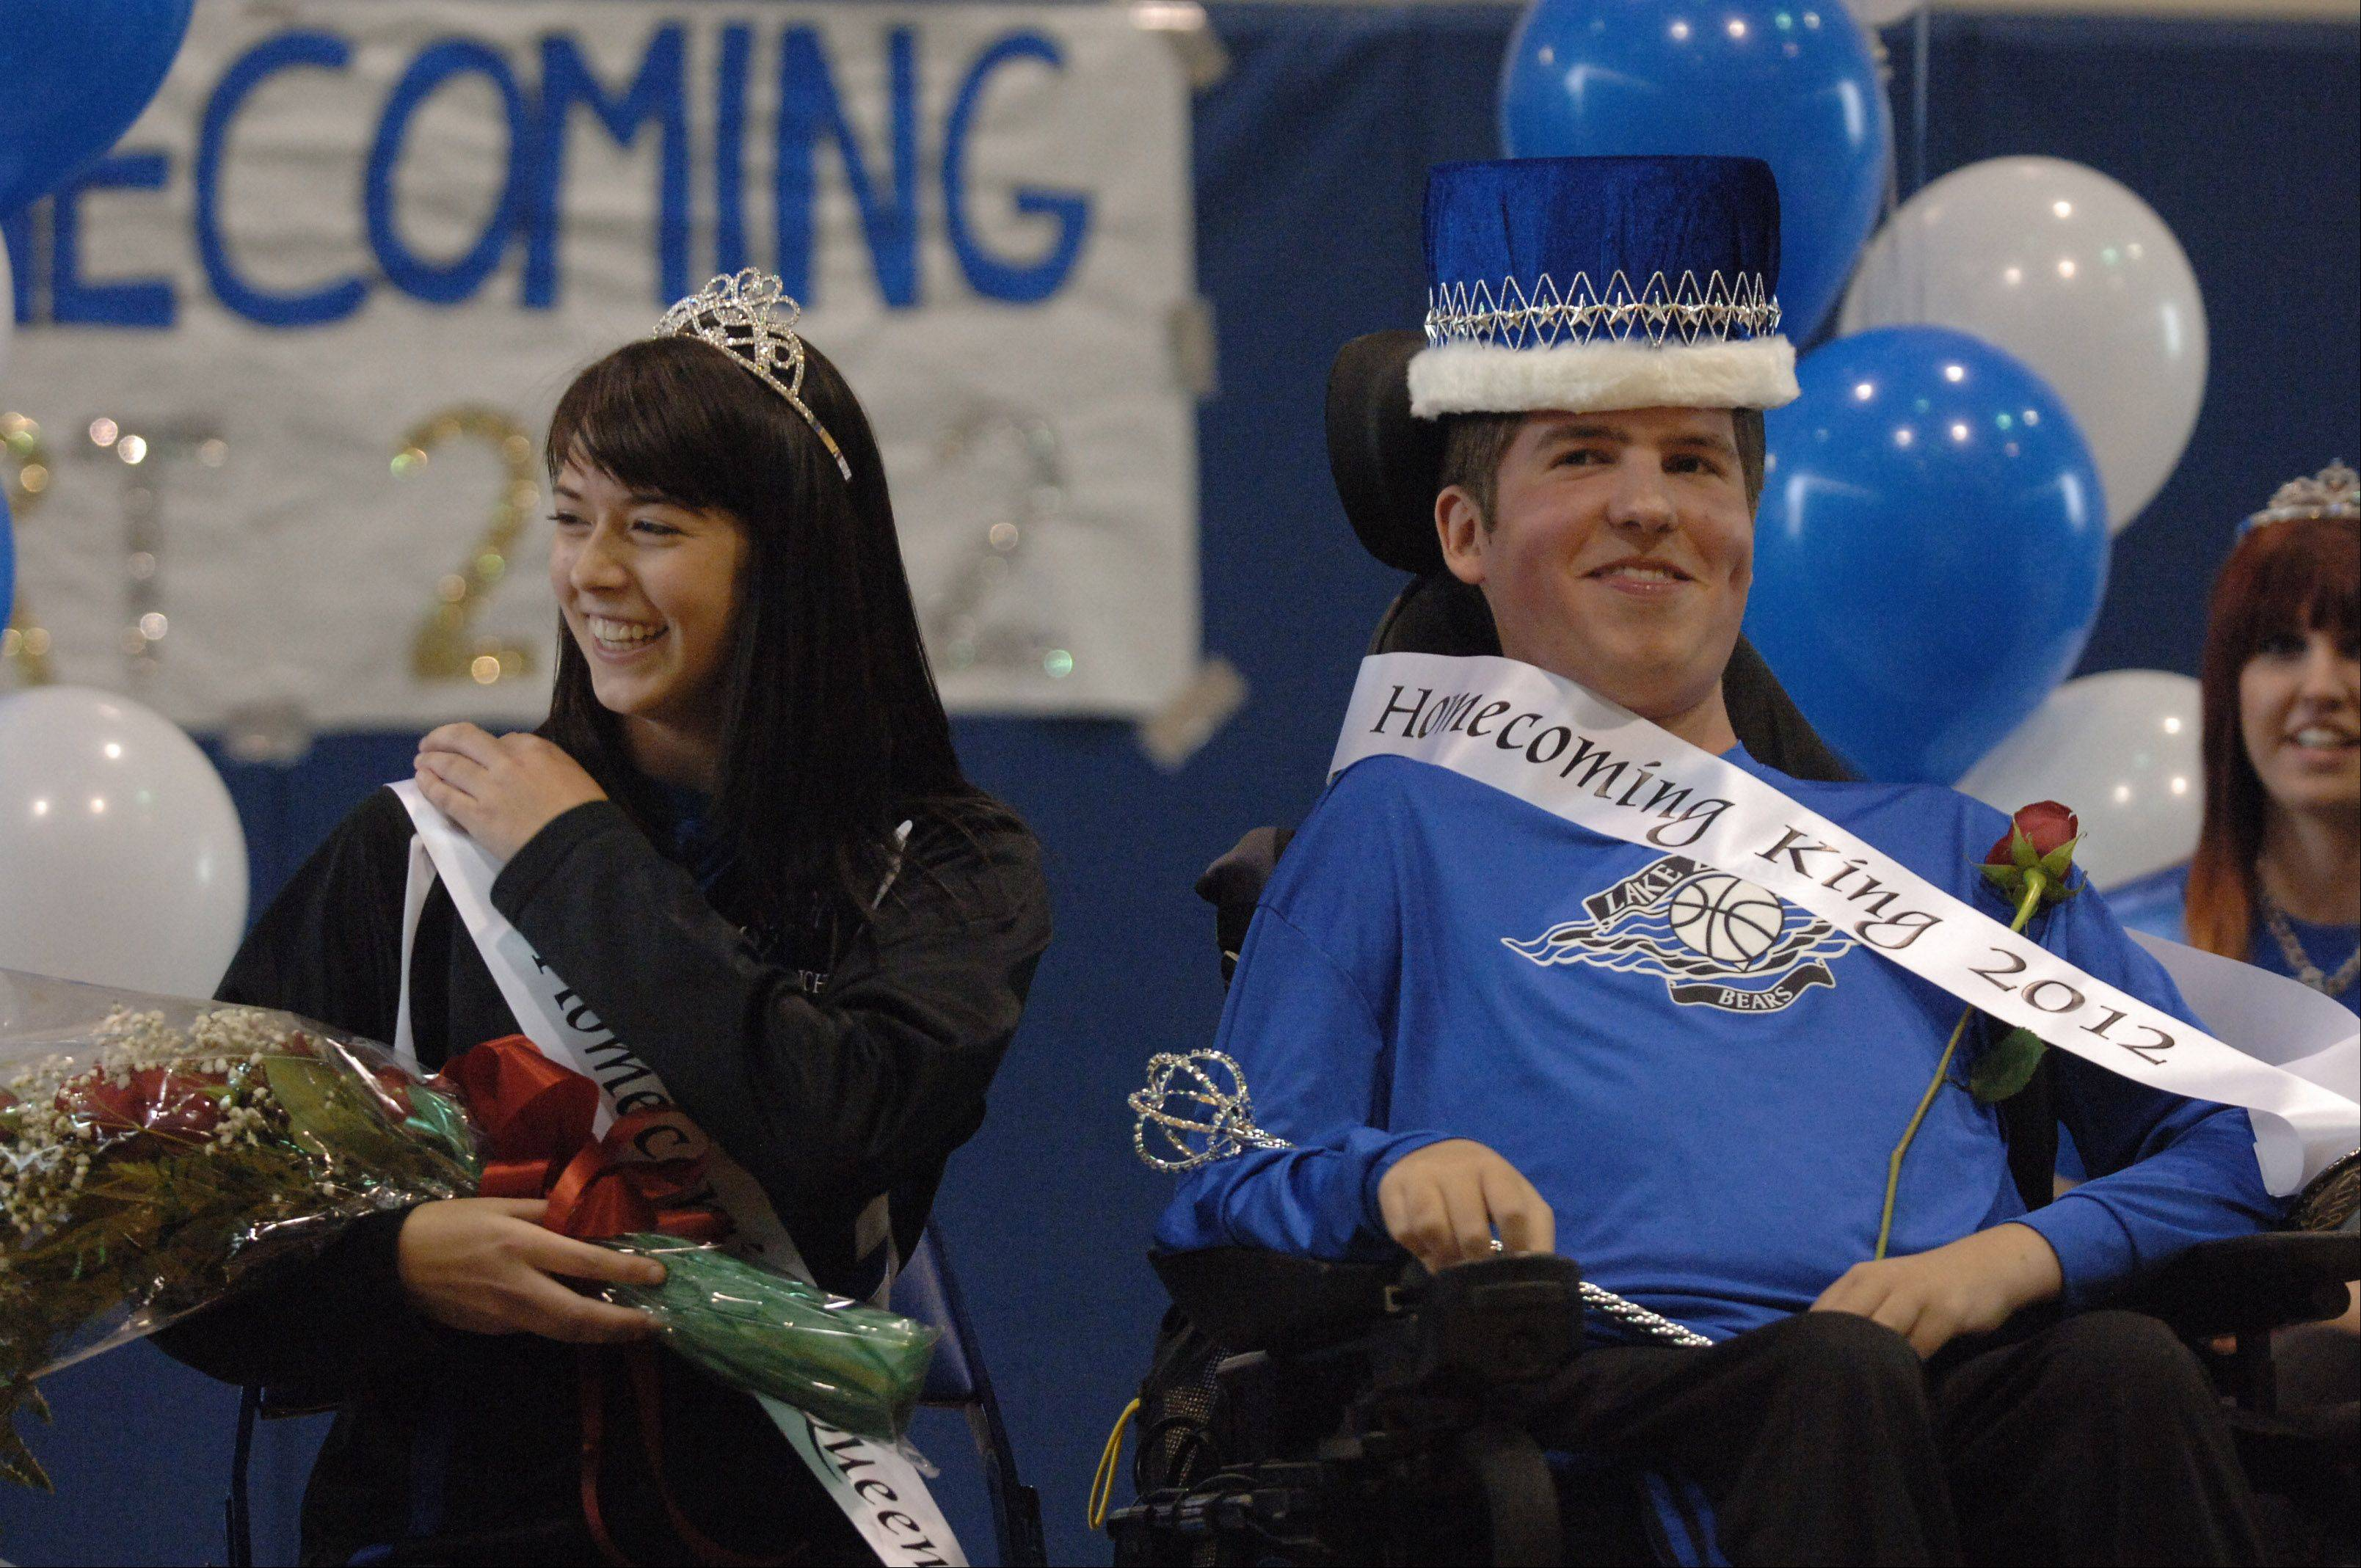 Rachel Spatz crowned Homecoming queen and Casey Stott crowned the king at Lake Zurich.